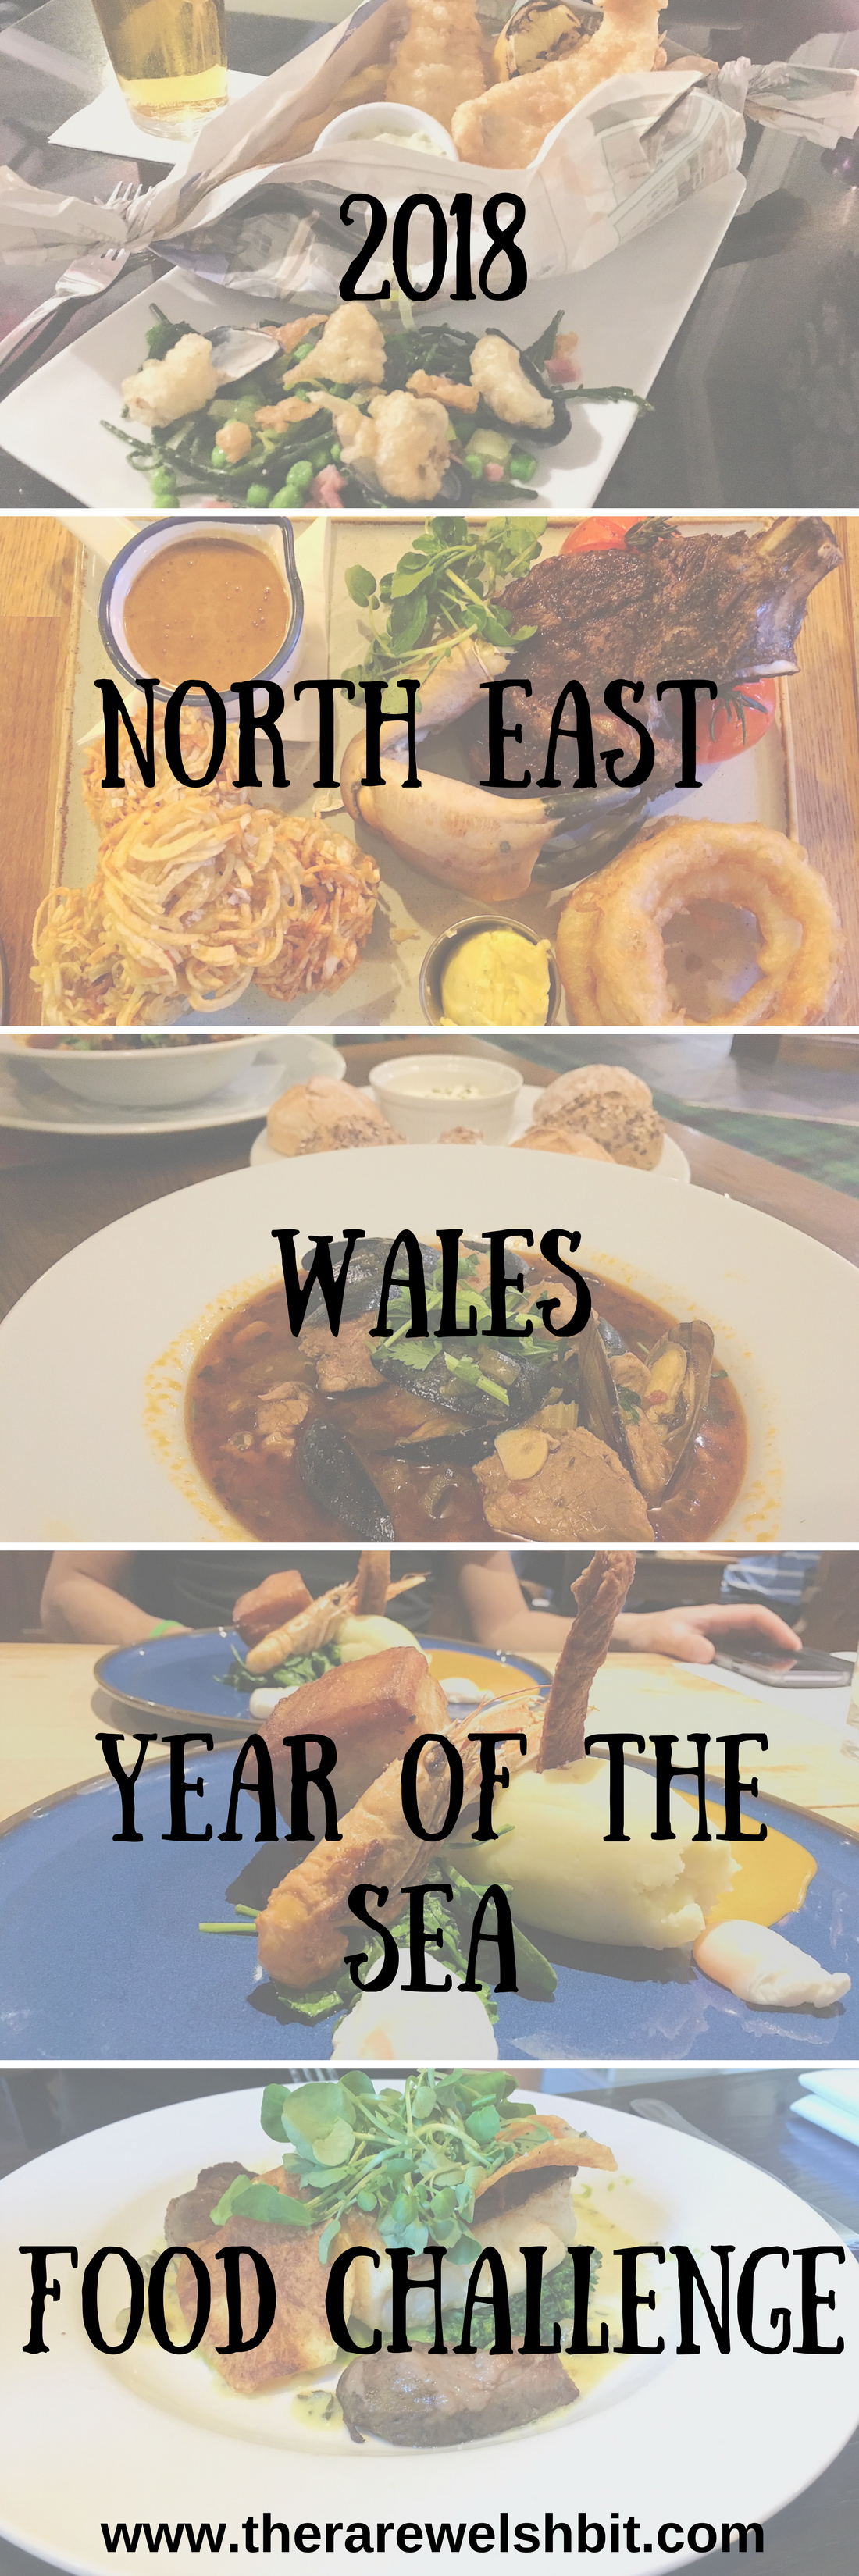 2018 North East Wales Year of the Sea Food Challenge